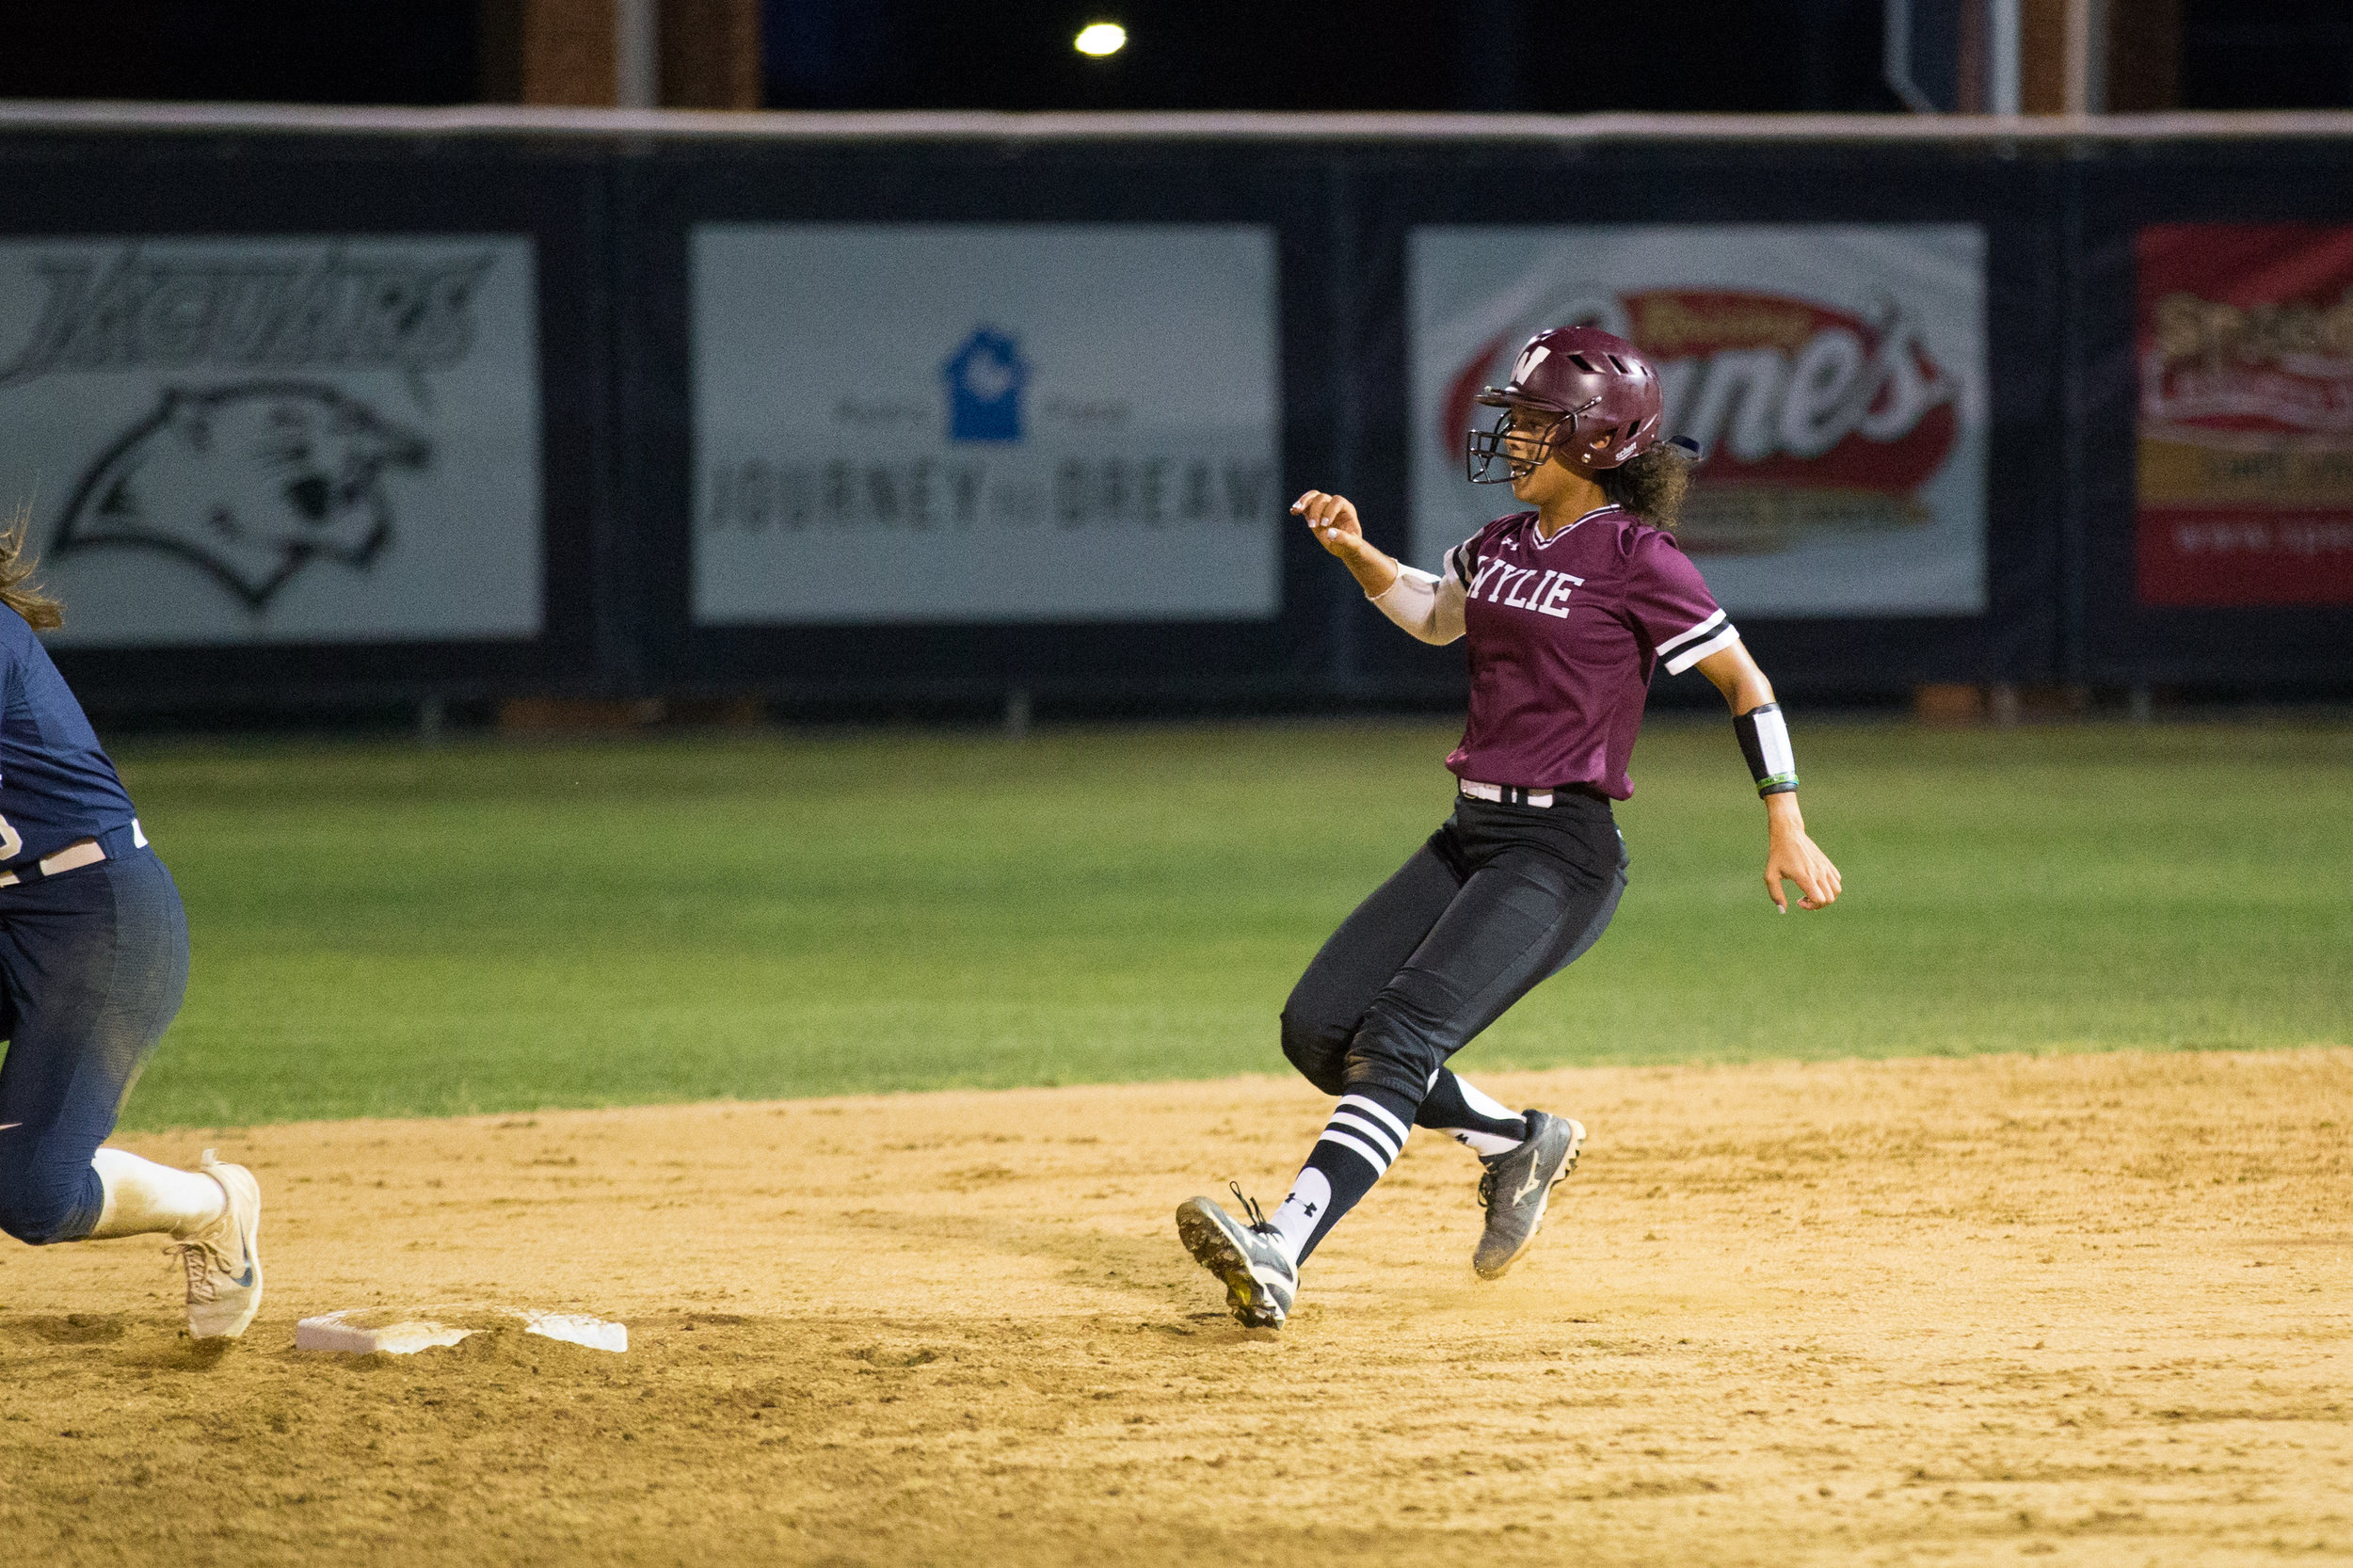 5_18 Wylie Softball-178.jpg